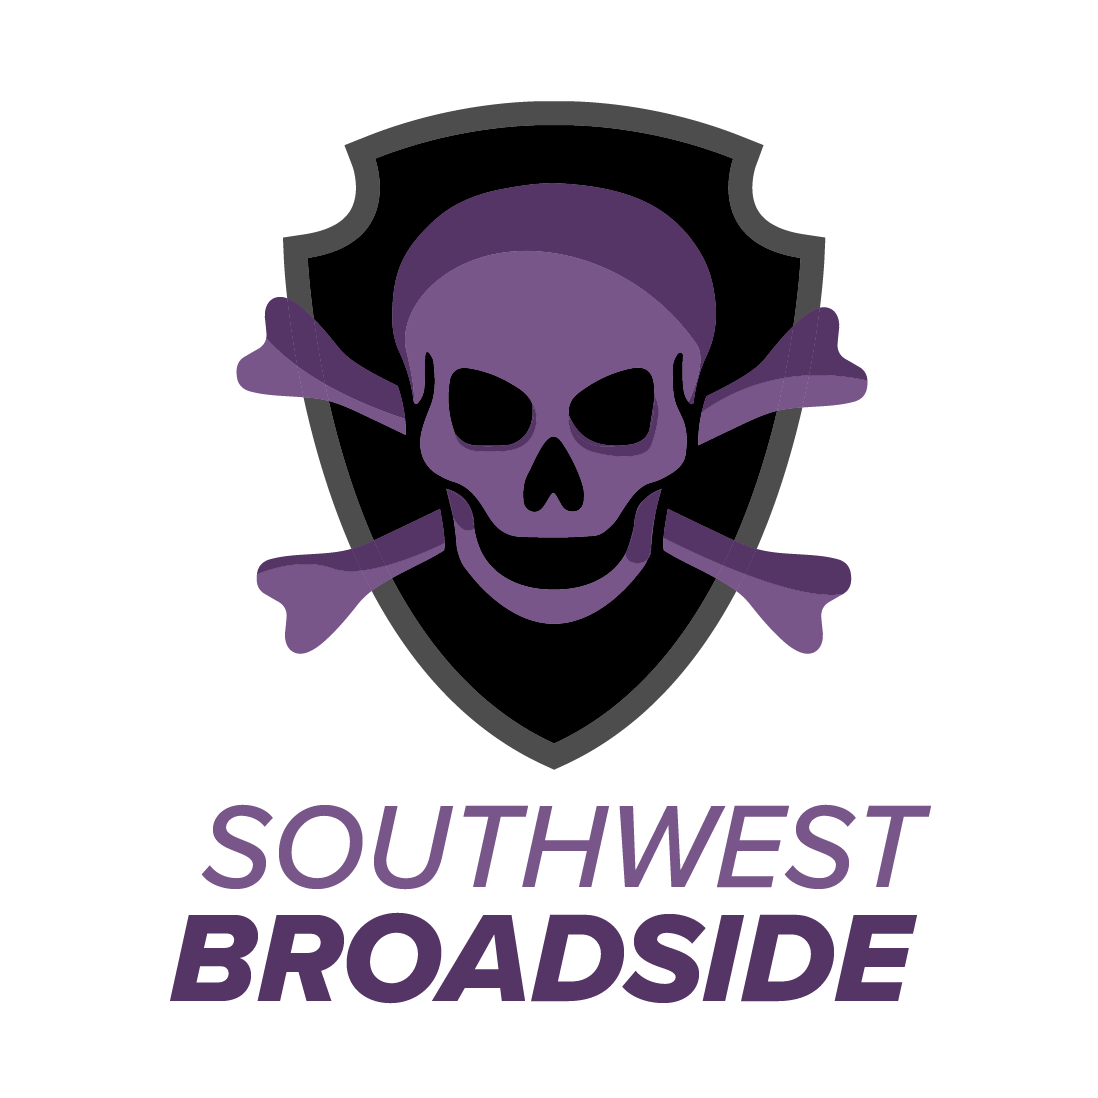 Southwest Broadside